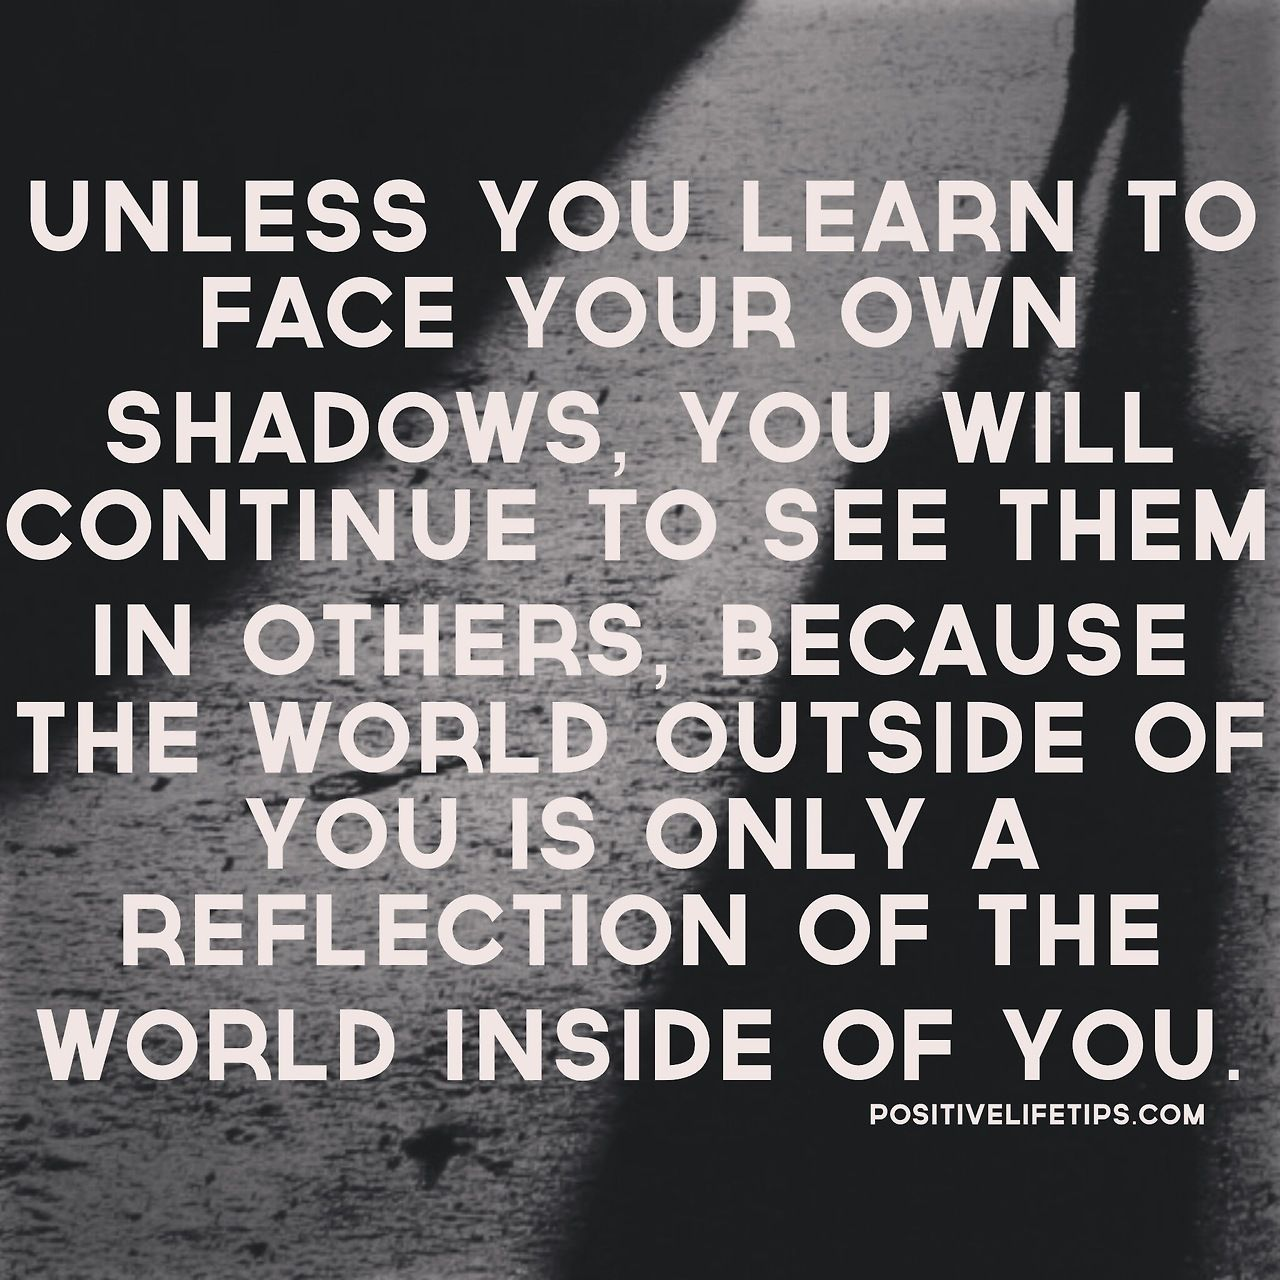 Reflection Quotes About Life Unless You Learn To Face Your Own Shadows You Will Continue To